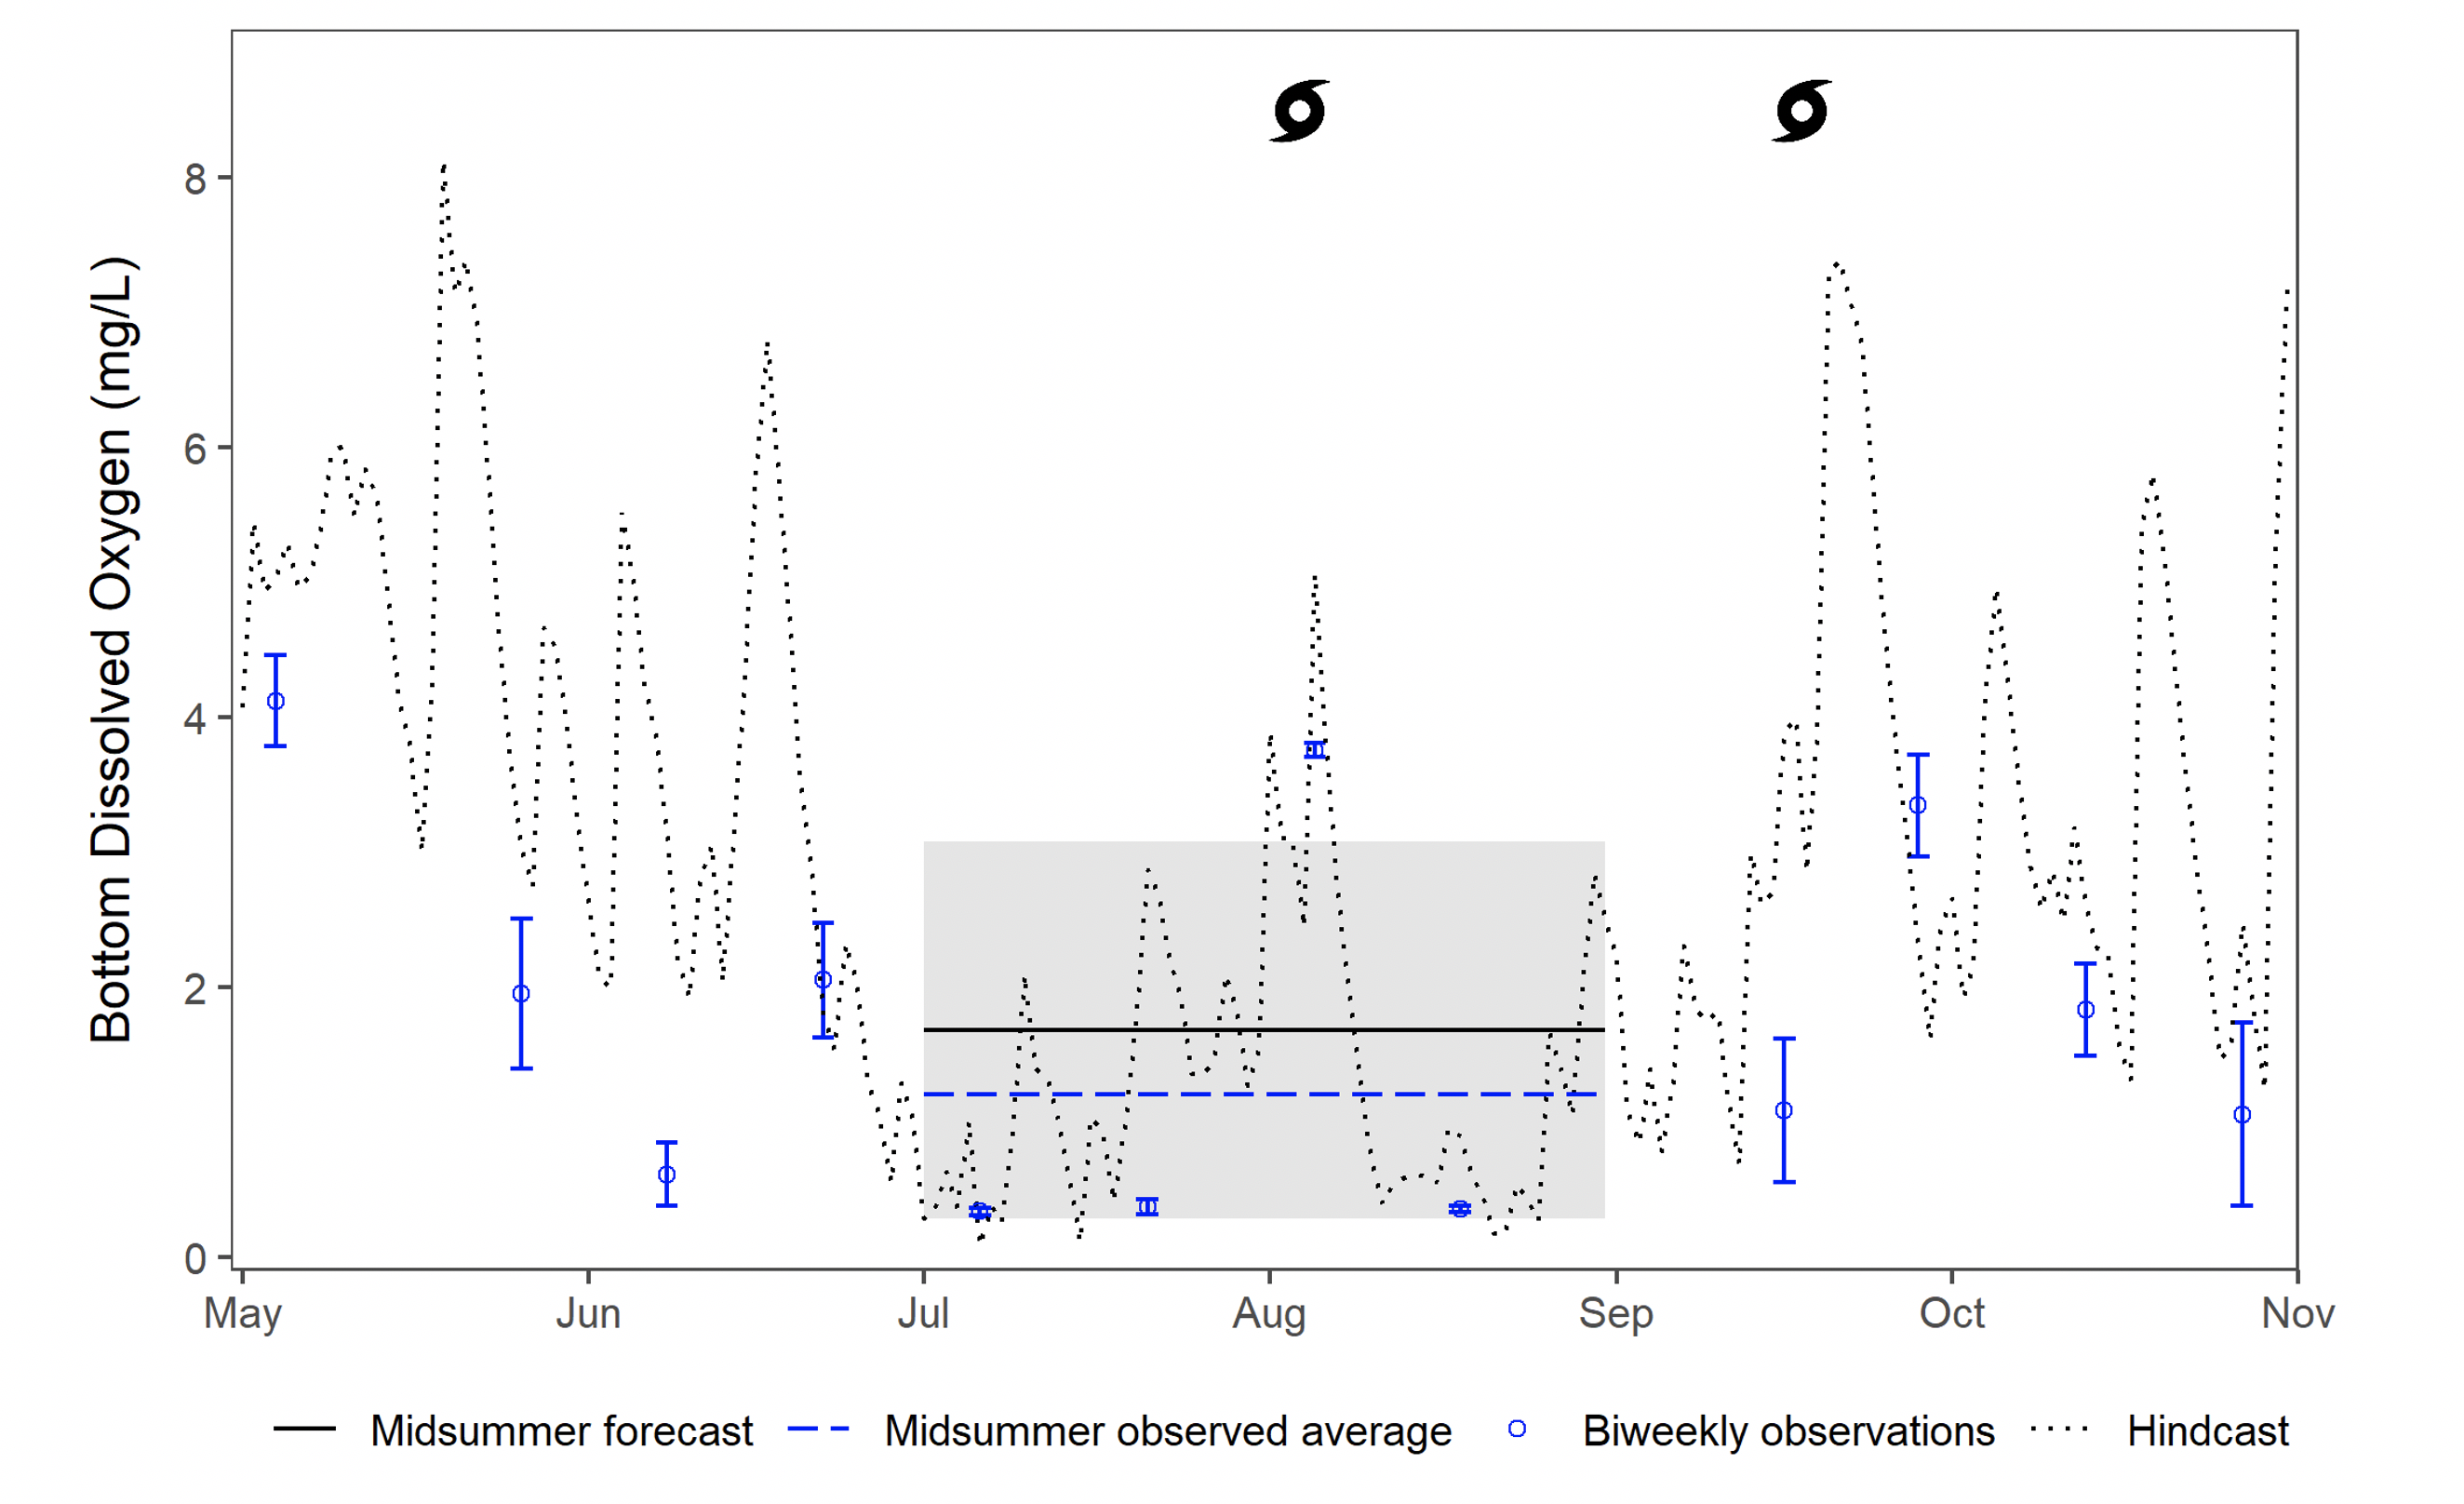 Figure 2. Forecasted, observed, and hindcasted dissolved oxygen for the Neuse River Estuary (middle segment) in 2020. The storm symbols represent Hurricane Isaias (August) and st›rong winds (mid-September). The gray band represents the 90% forecast interval, and the blue error bars represent the range of observed values.